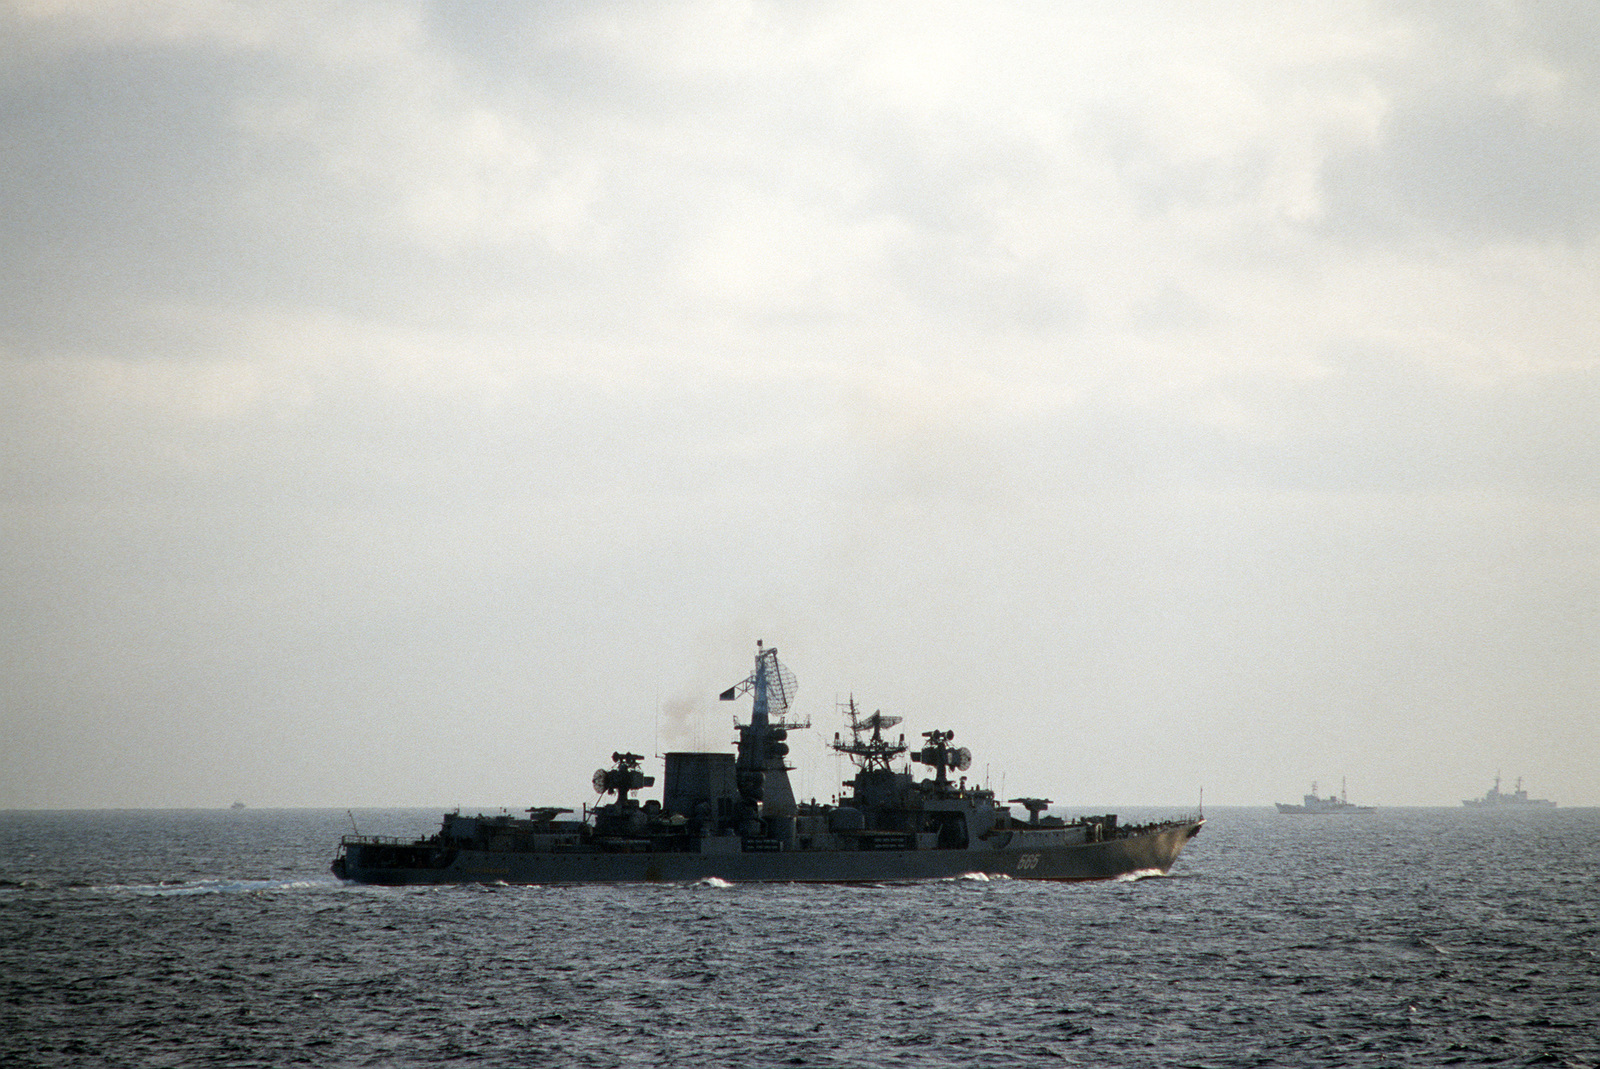 A starboard view of the Soviet guided missile cruiser PETROPAVLOVSK (565) shadowing salvage operations for downed Korean Air Lines Flight 007 (KAL-007).  The commercial jet was shot down by Soviet aircraft over Sakhalin Island on August 30, 1983 in the Sea of Japan.  All 269 passengers and crewmen were killed